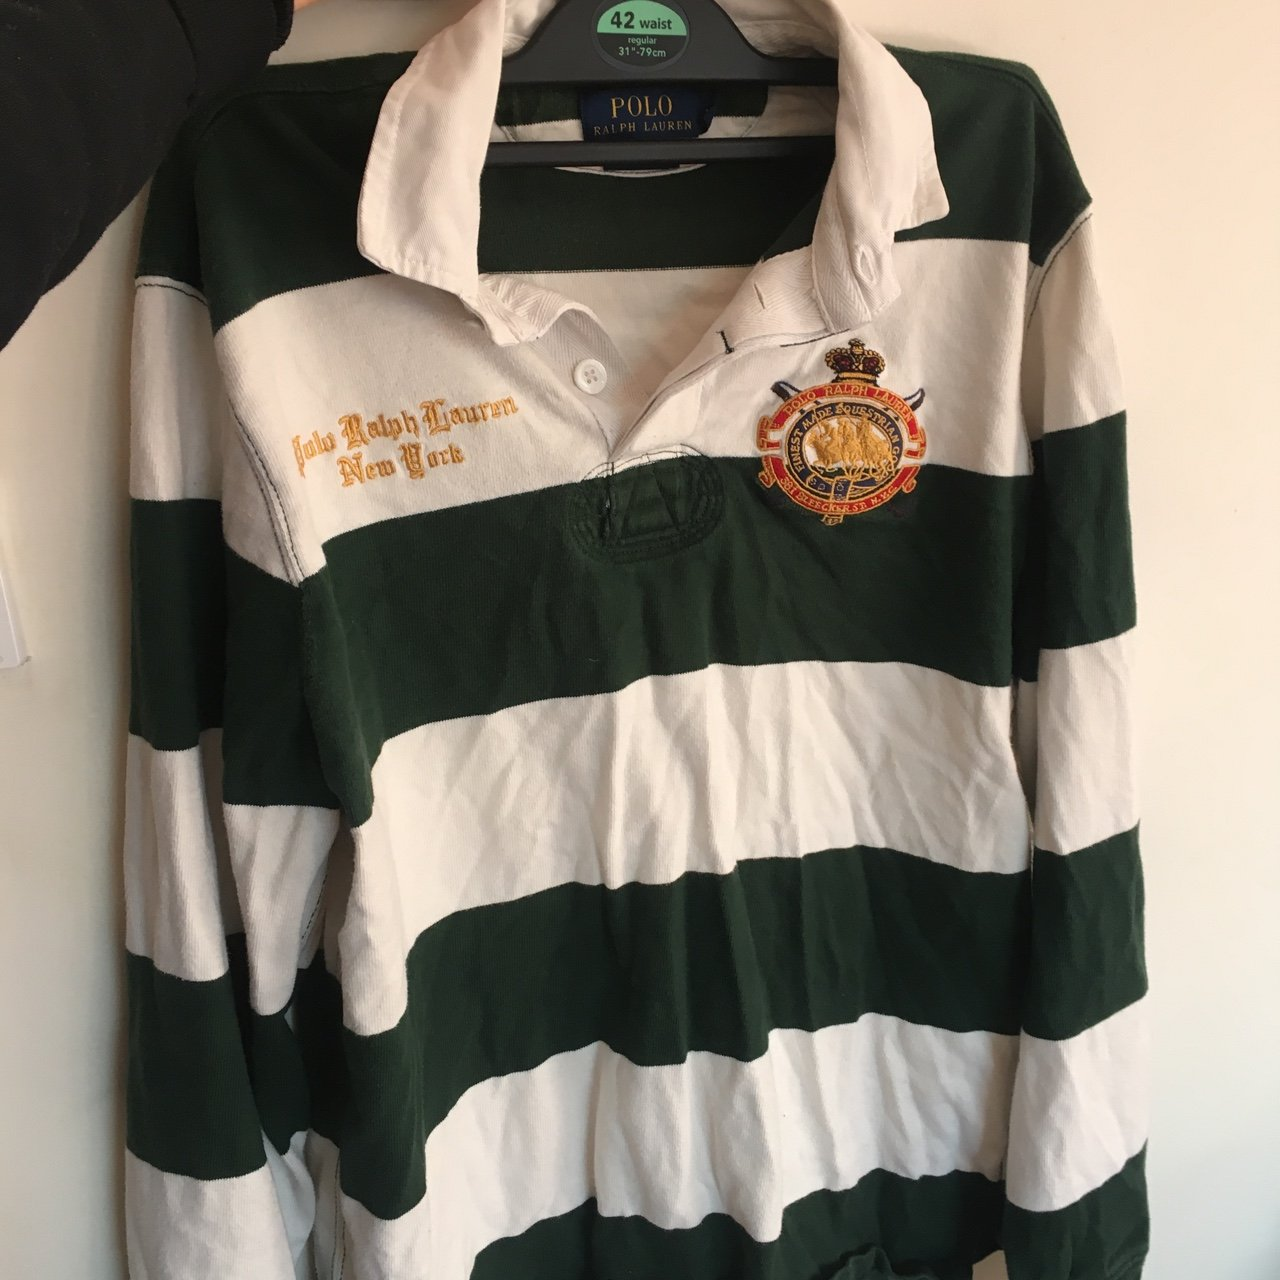 35c3d504 @amberdc. 8 months ago. Great Yarmouth, United Kingdom. Ralph Lauren green  and white striped 'rugby top' styled shirt. Size medium.